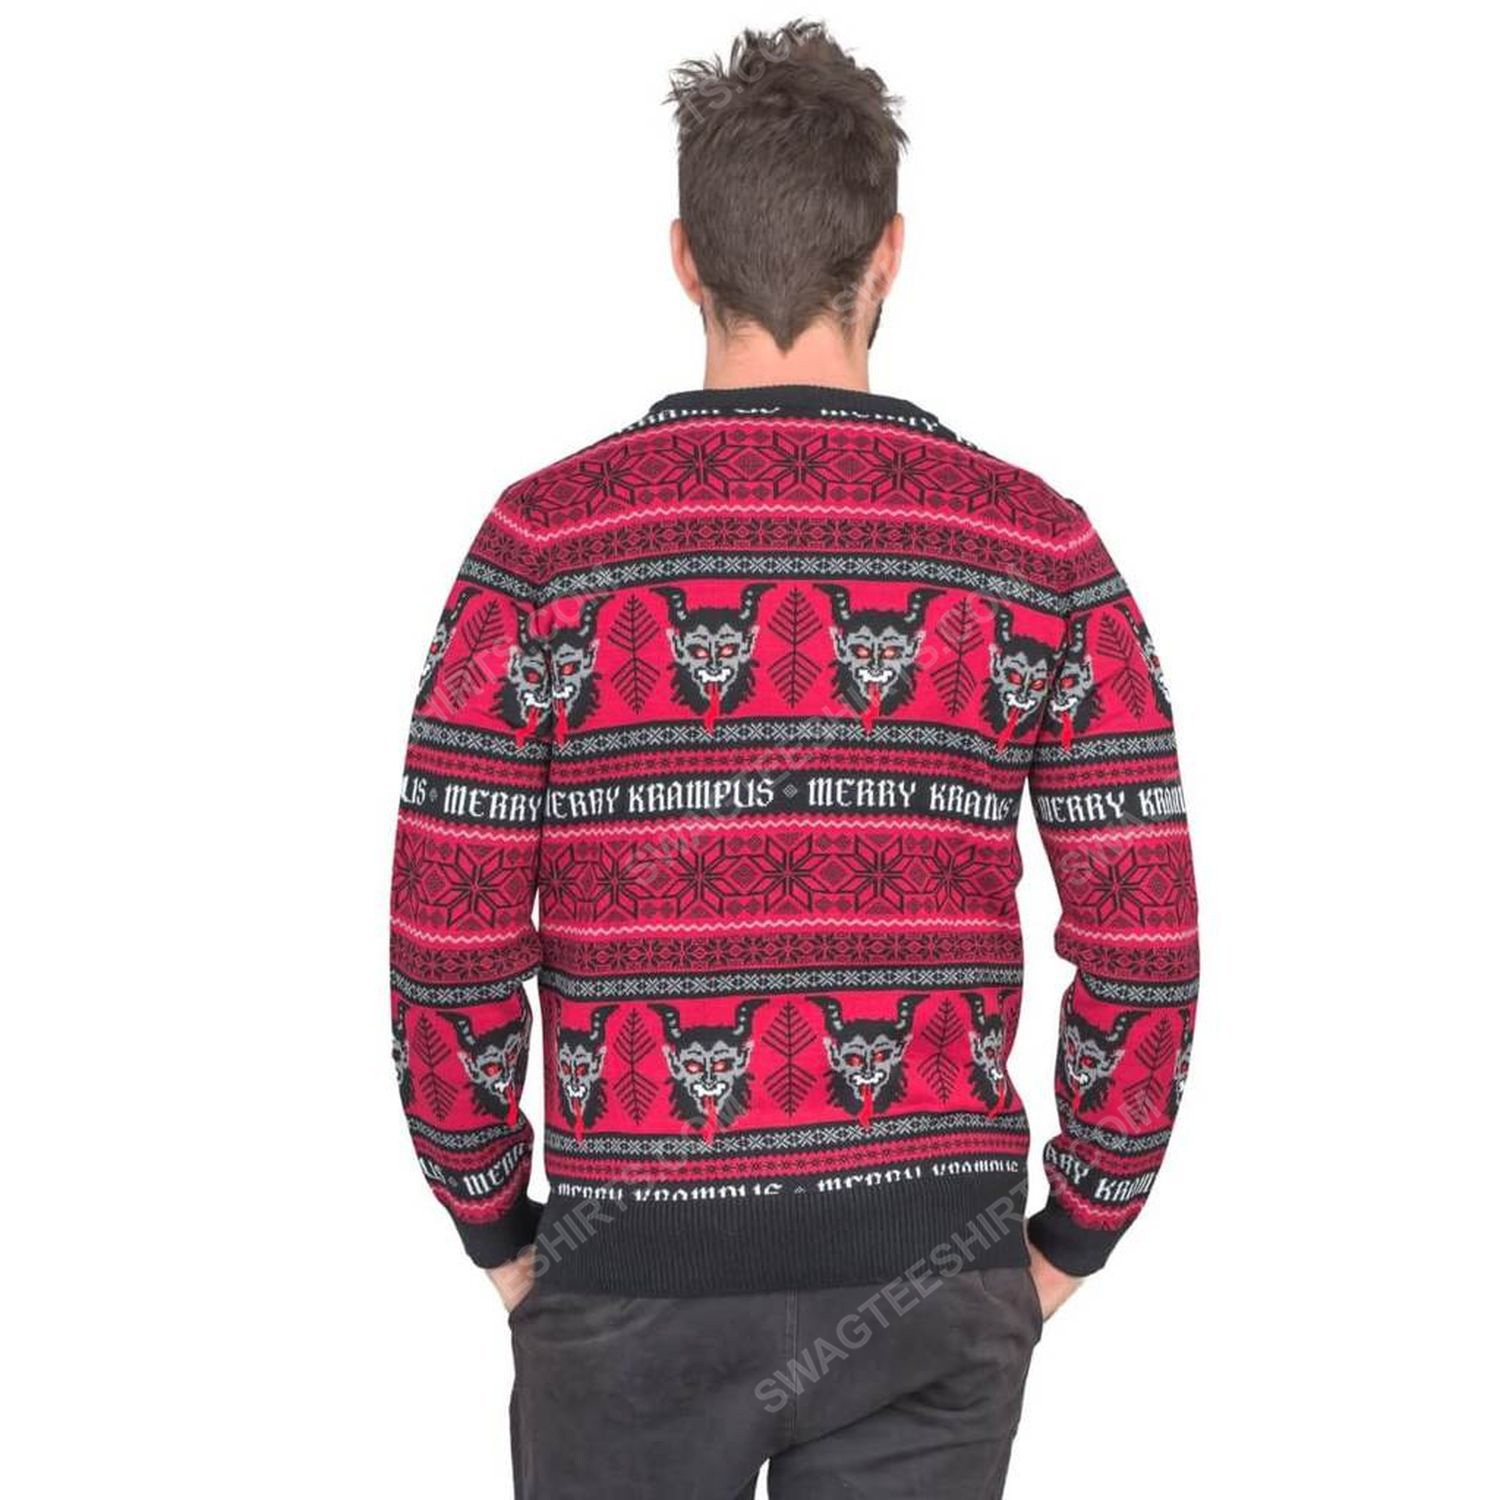 Christmas time merry krampus full print ugly christmas sweater 4